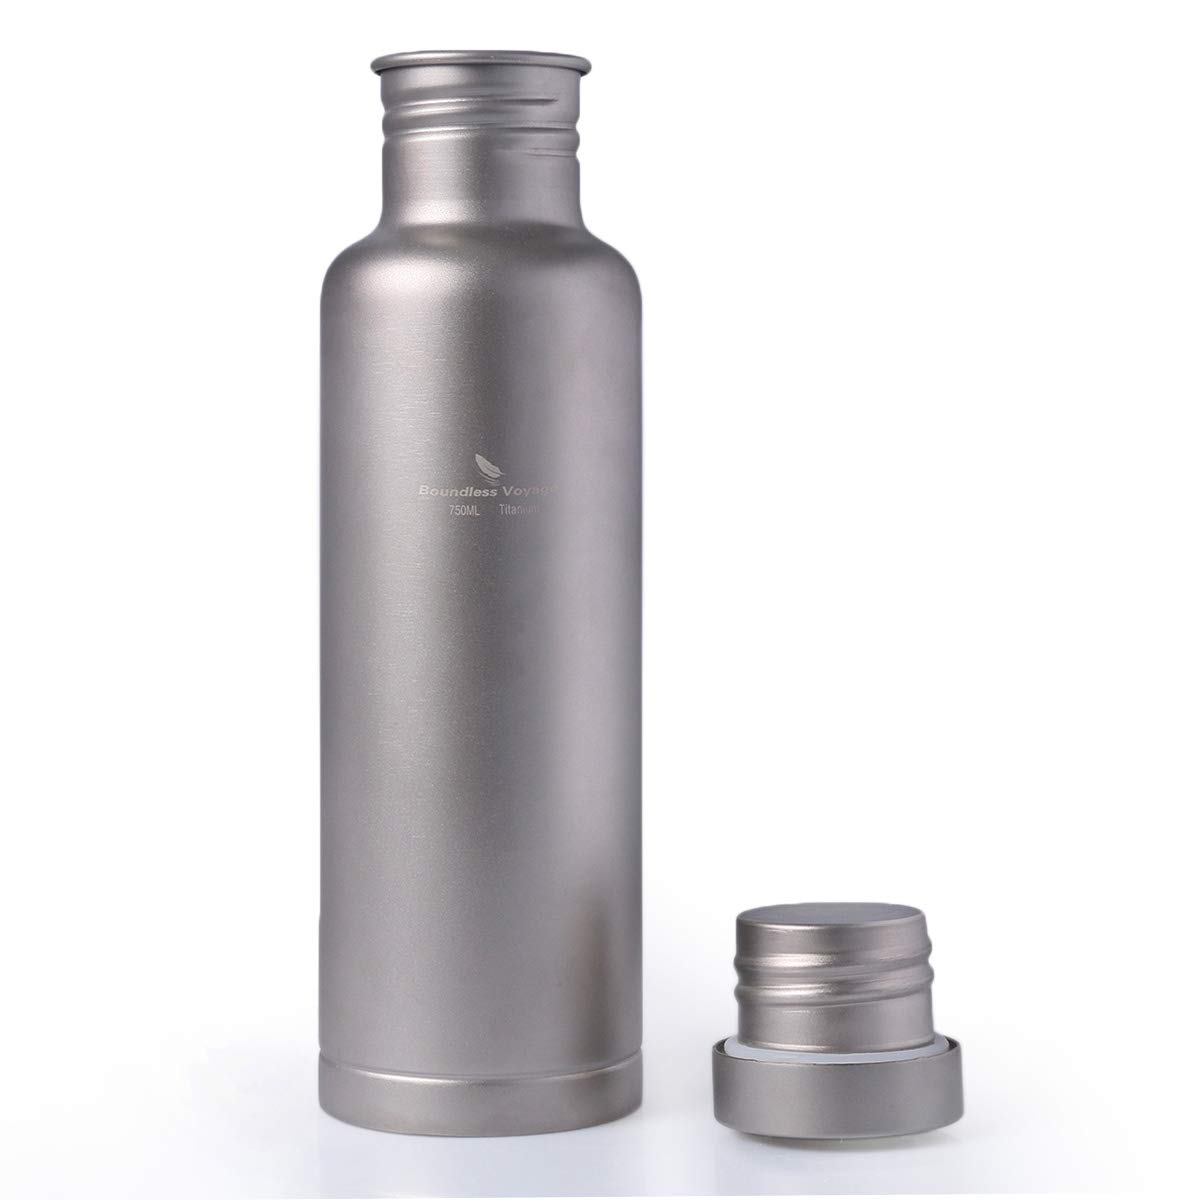 iBasingo Titanium Sports Bottle with Lid Outdoor Leak-Proof Water Bottle Canteen Drinking Flask Pot Only 160g for Camping Hiking Climbing Traveling Cycling Running